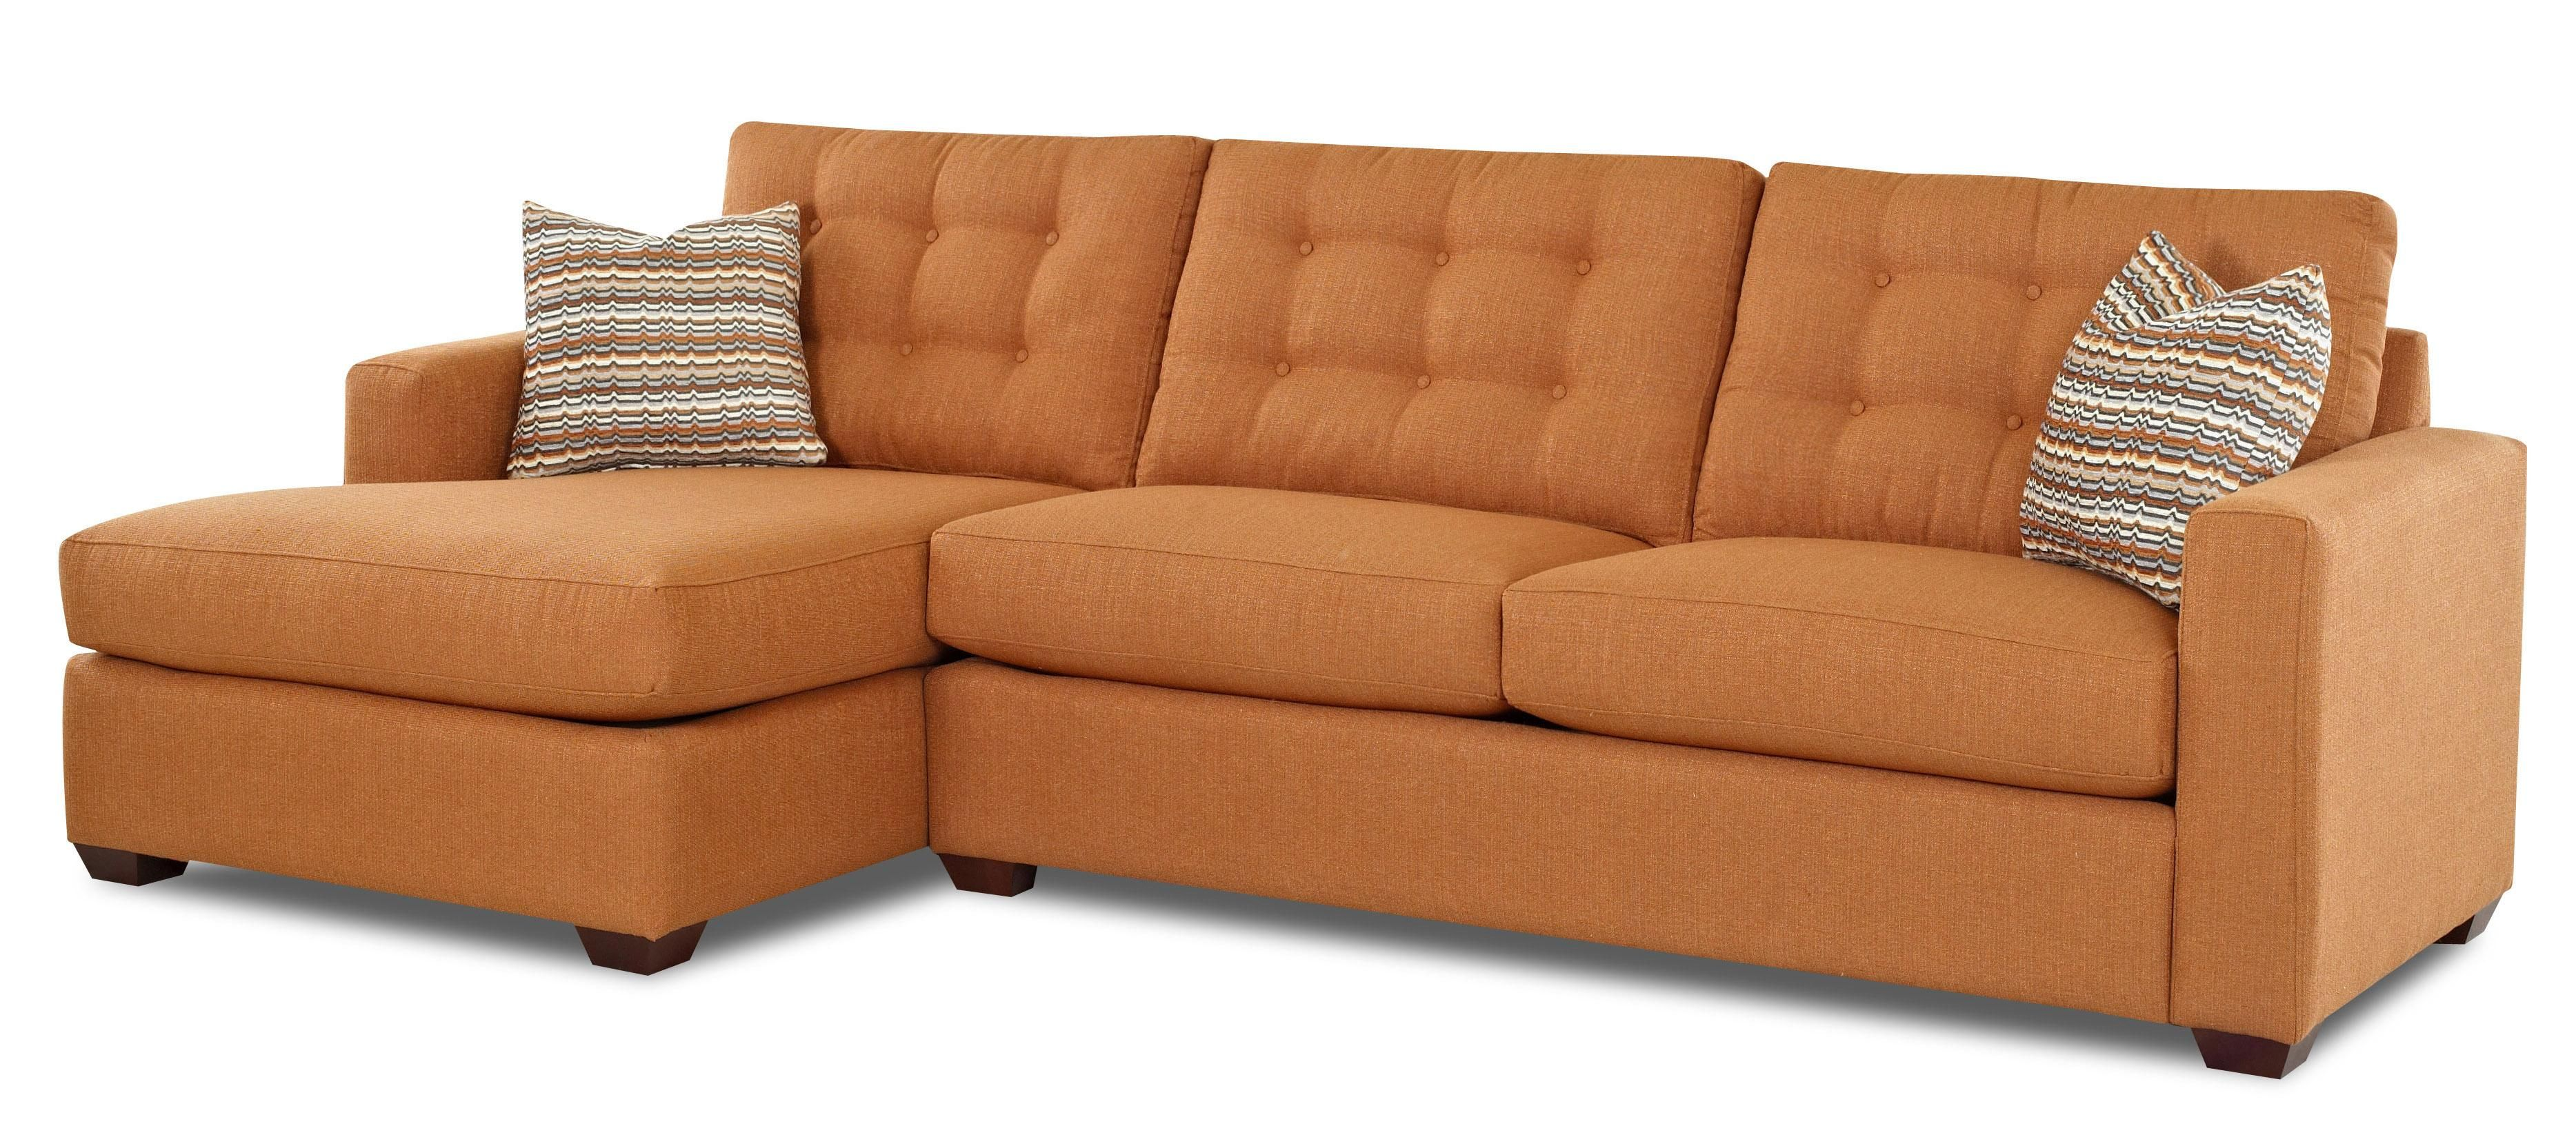 Lido Casual Sectional Sofa With Chaise Lounge By Klaussner Wolf Furniture Pennsylvania Maryland